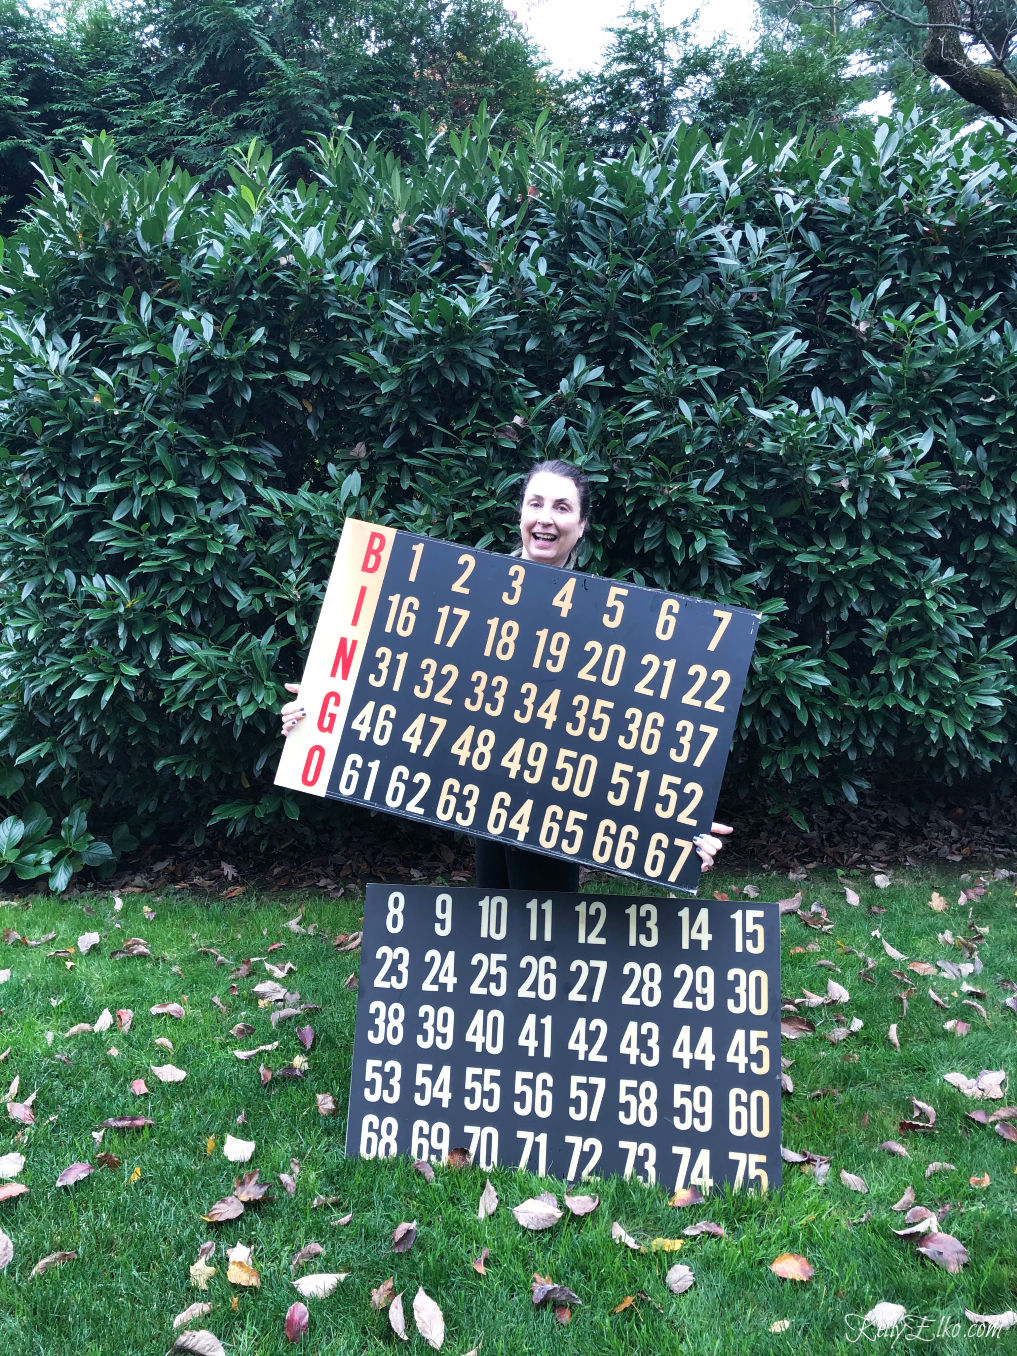 Thrifting Diaries October Haul - look at this giant vintage bingo score board! kellyelko.com #vintage #vintagedecor #thrifting #vintagemodern #farmhousedecor #thriftingdiaries #kellyelko